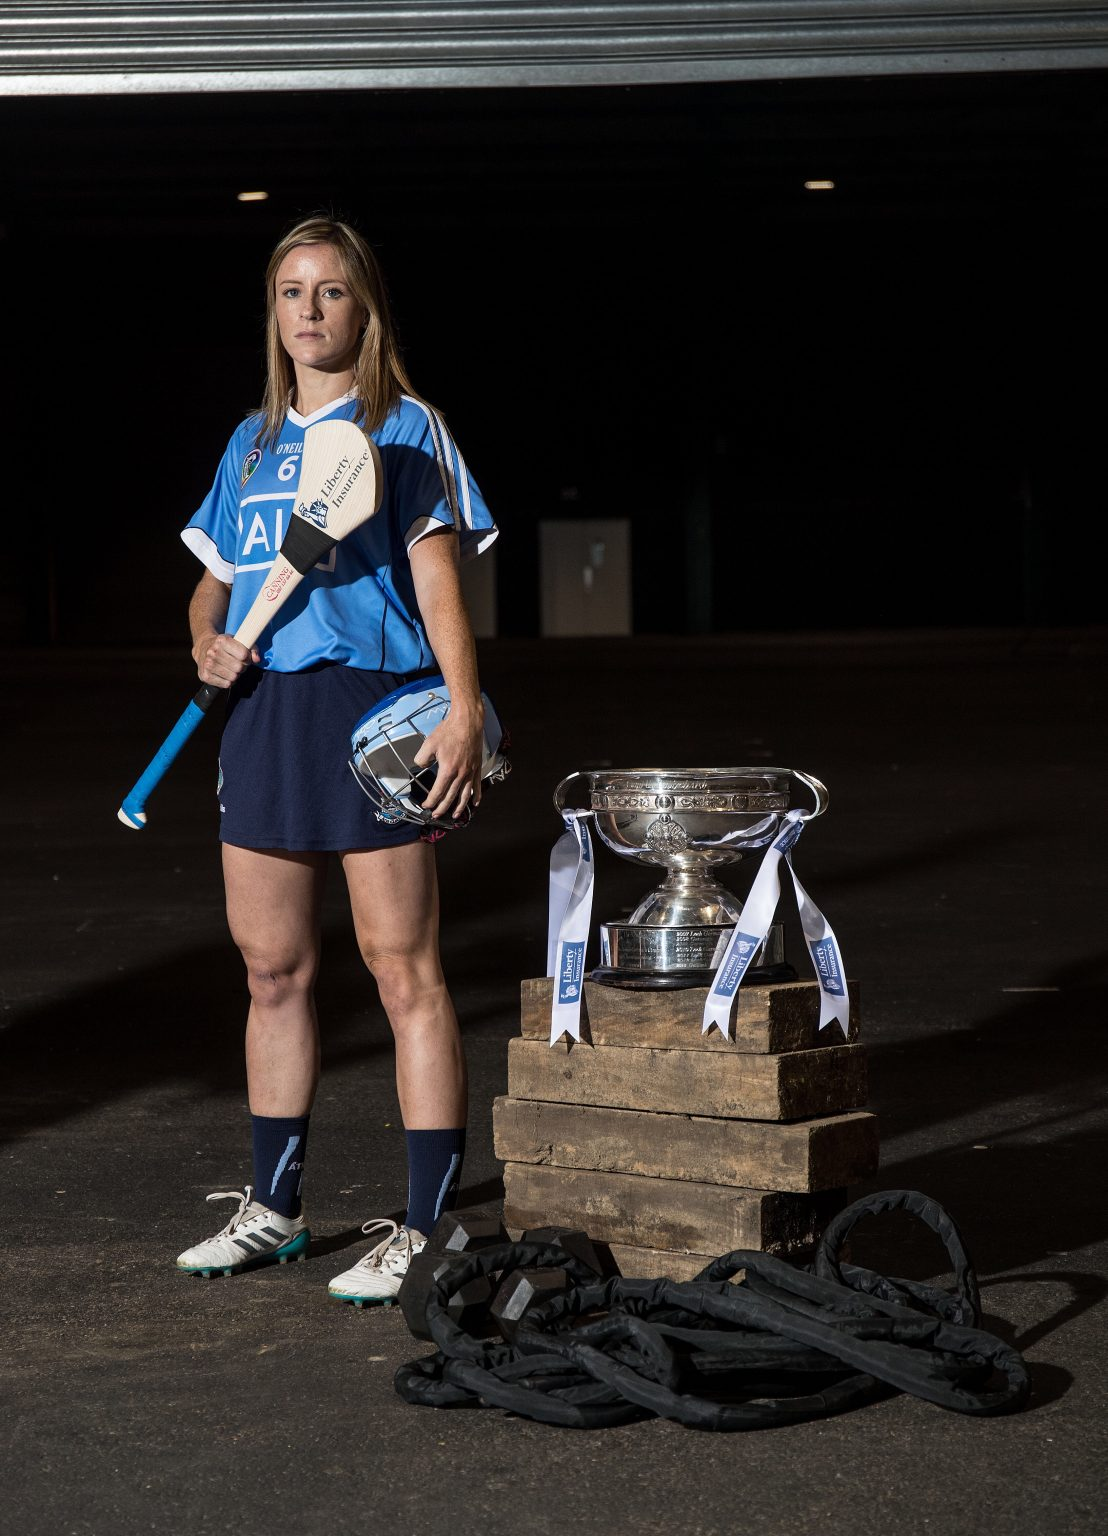 Dublin Camogie player Laura Twomey in a sky blue jersey and navy Skort holding a hurl in her right hand and light blue and navy helmet in her left hand is back playing after recovery from cruciate injury